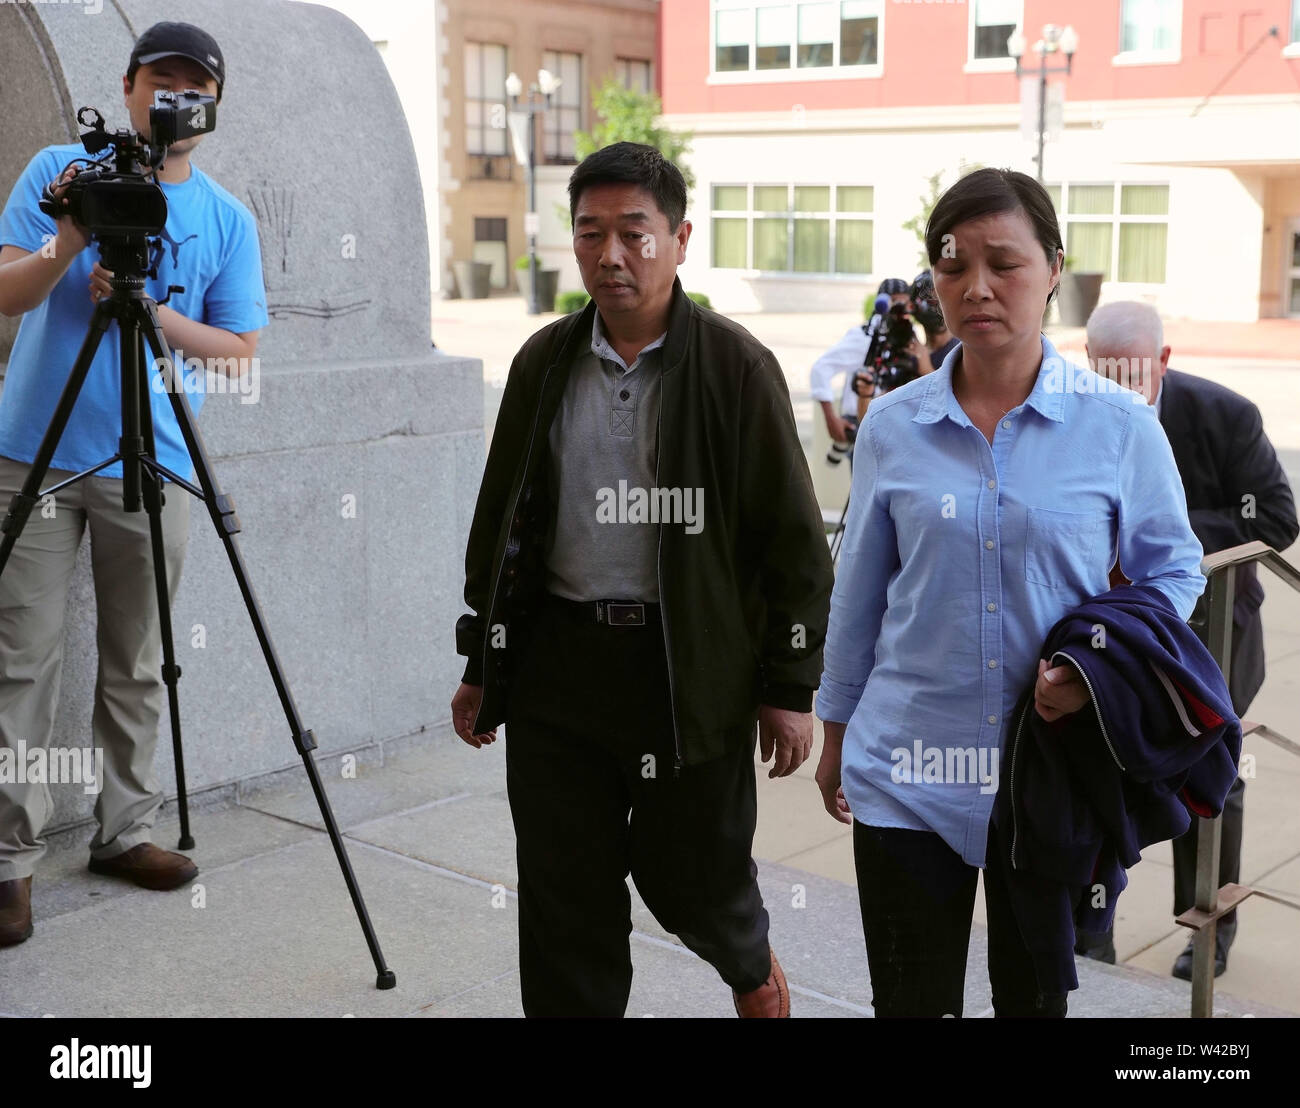 Beijing, USA. 18th July, 2019. Family members of Chinese scholar Zhang Yingying head to a federal courthouse building in Peoria, Illinois, the United States, July 18, 2019. Credit: Wang Ping/Xinhua/Alamy Live News - Stock Image